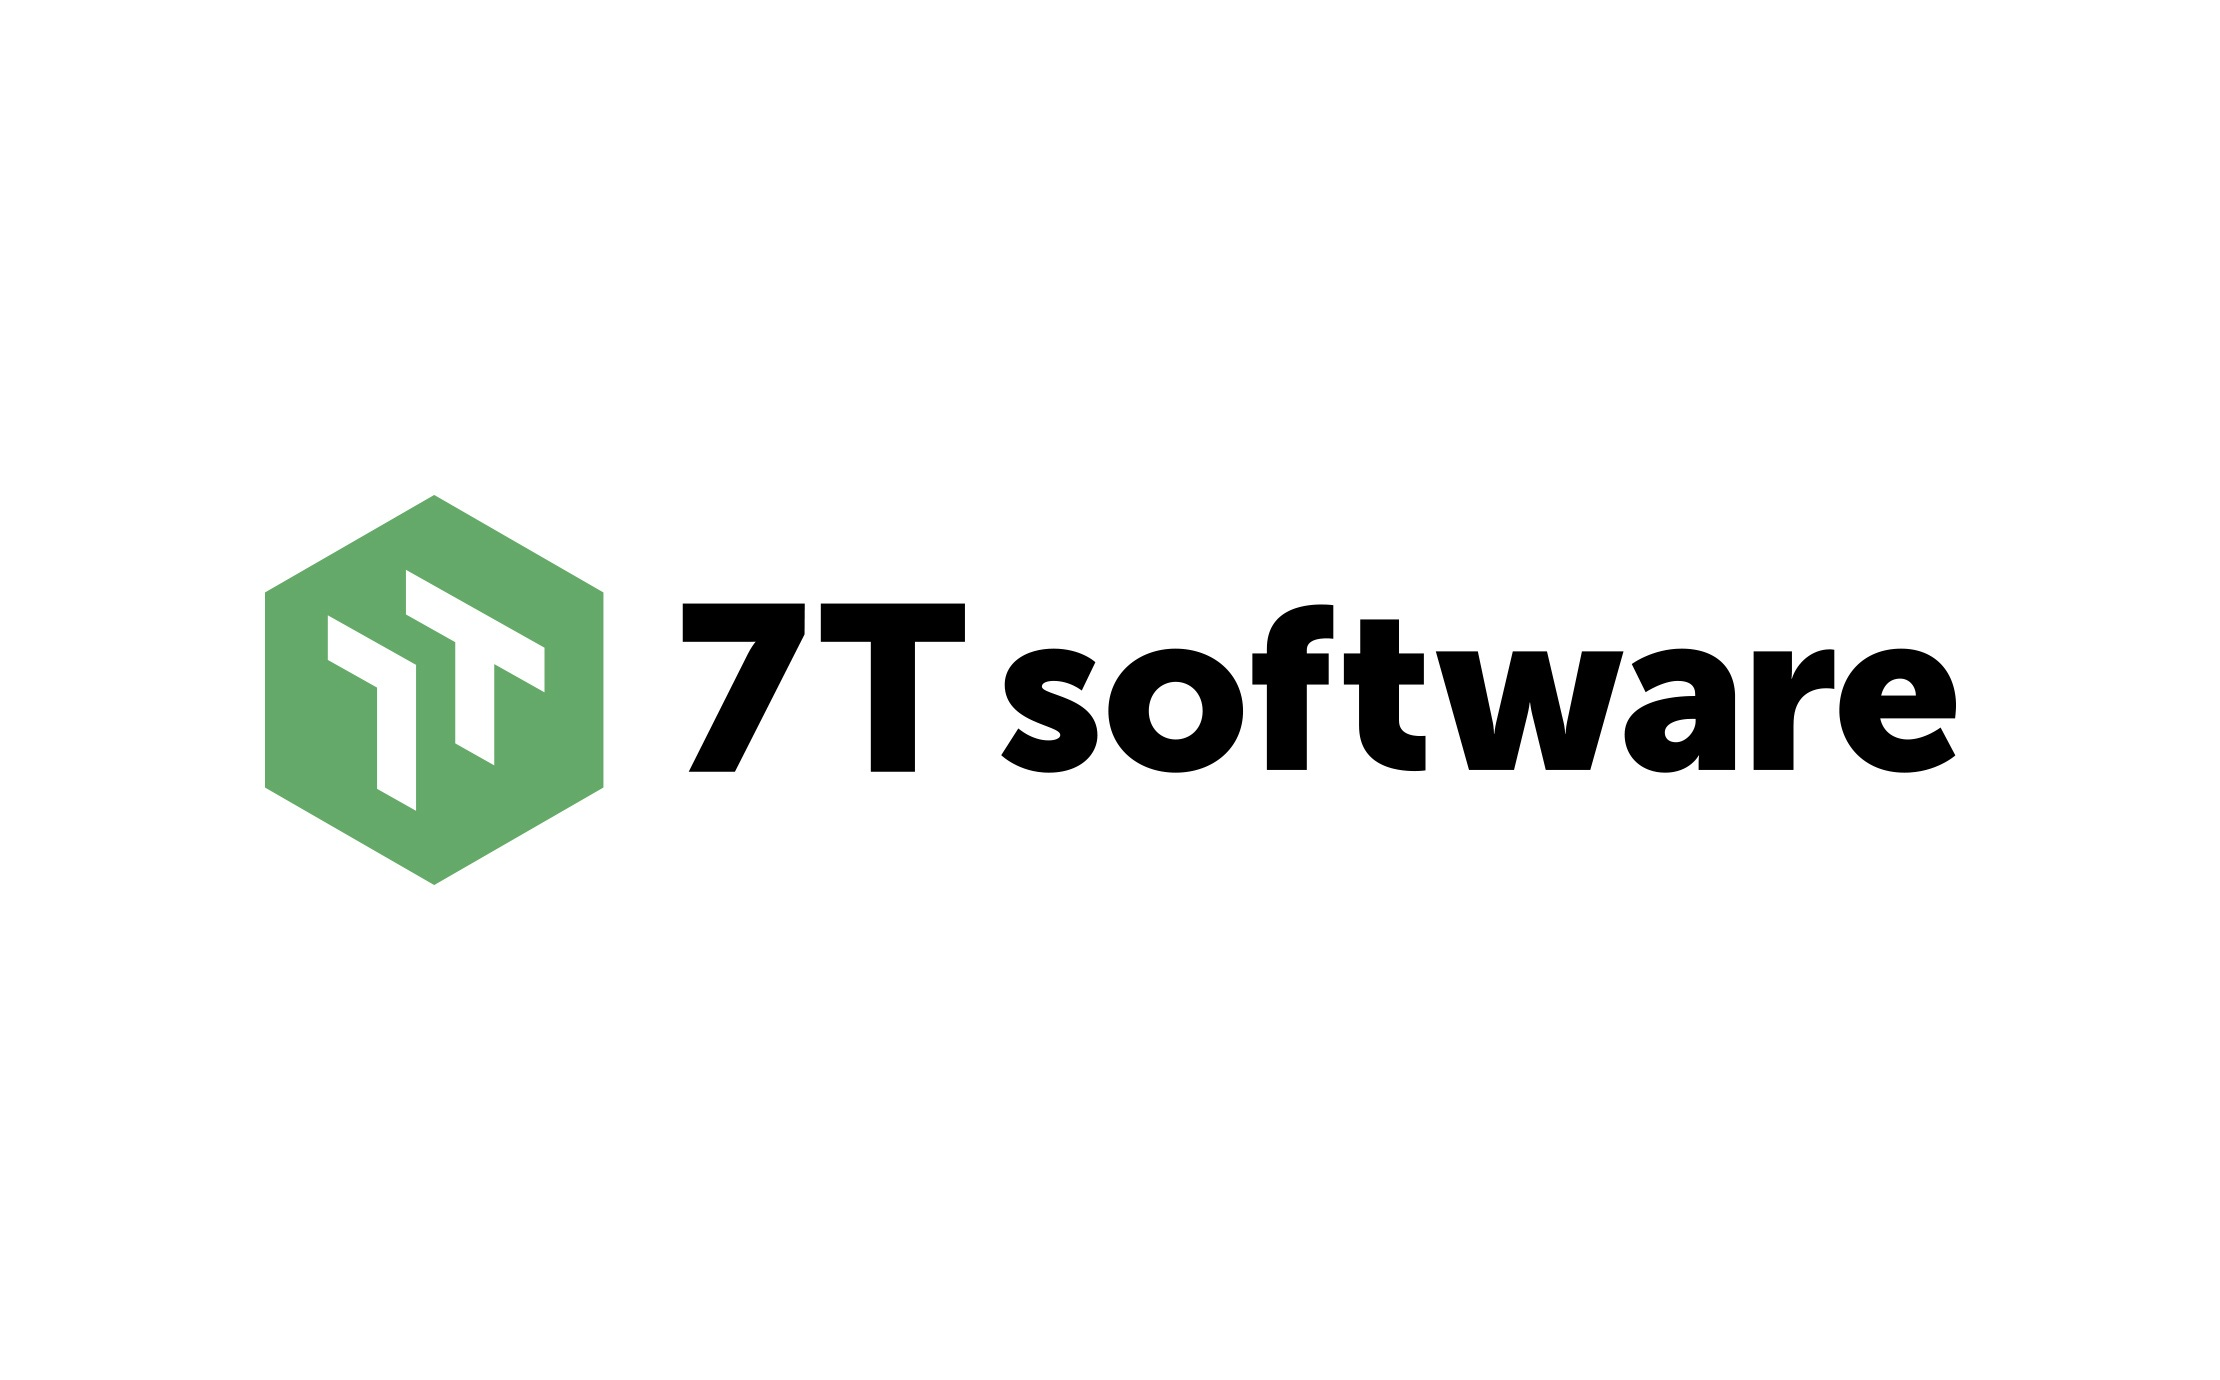 7T Software